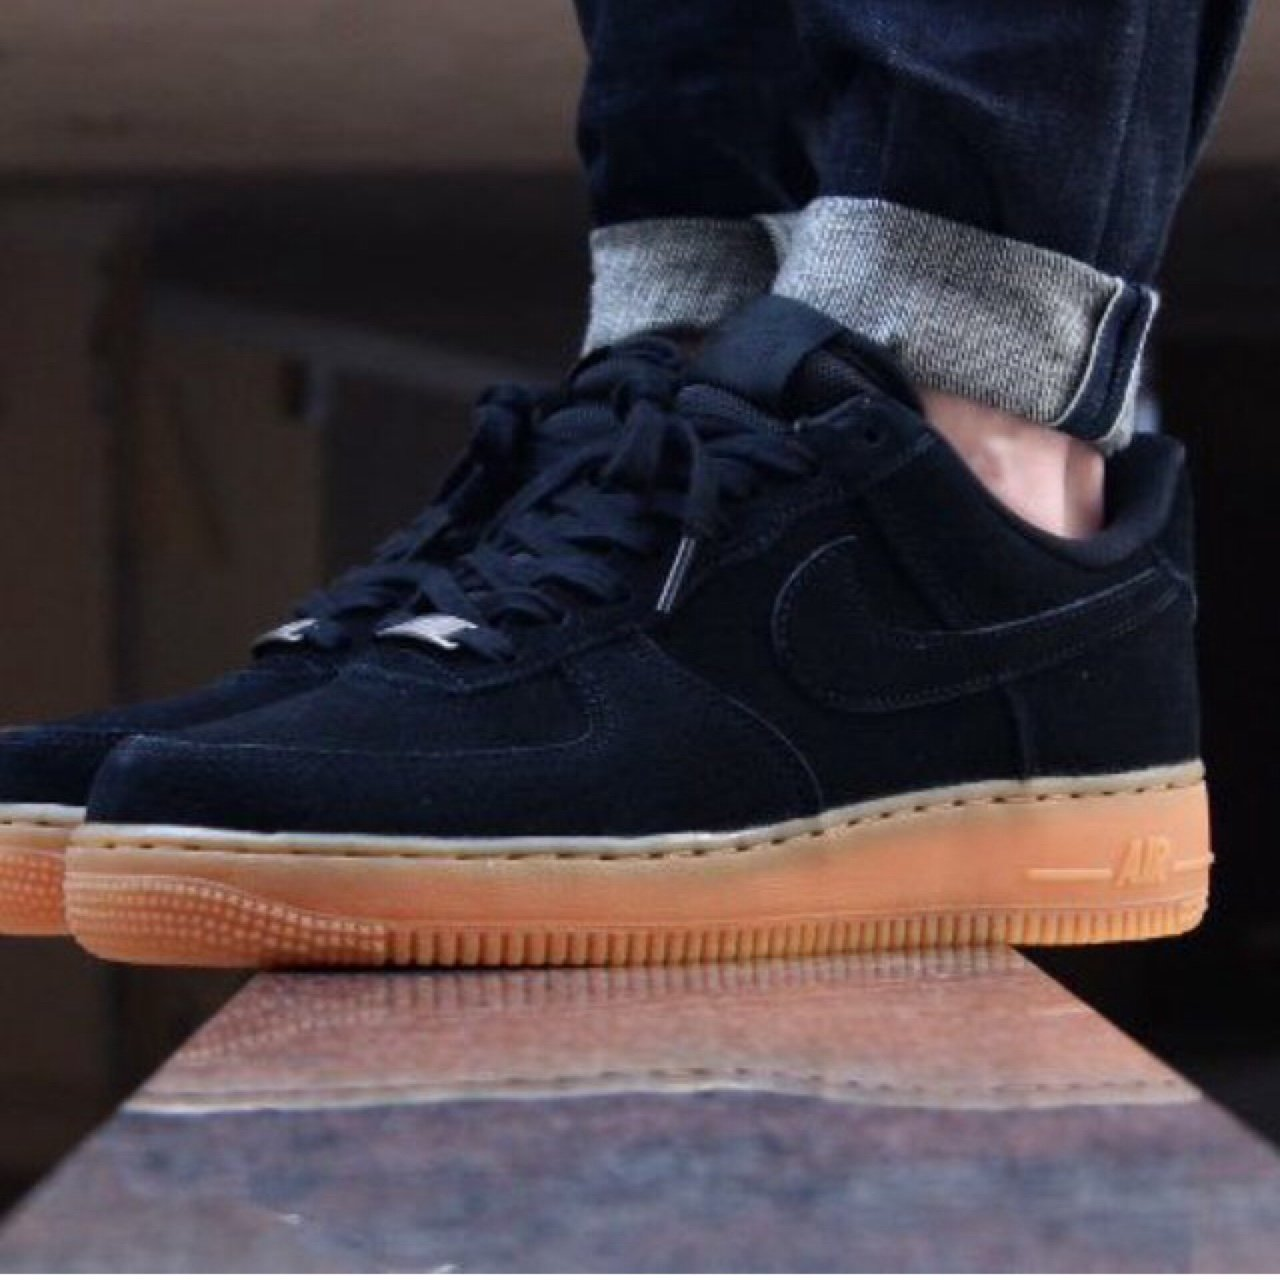 lowest price 08d3d 74d7b 2 years ago. Bristol, United Kingdom. Nike Air Force 1